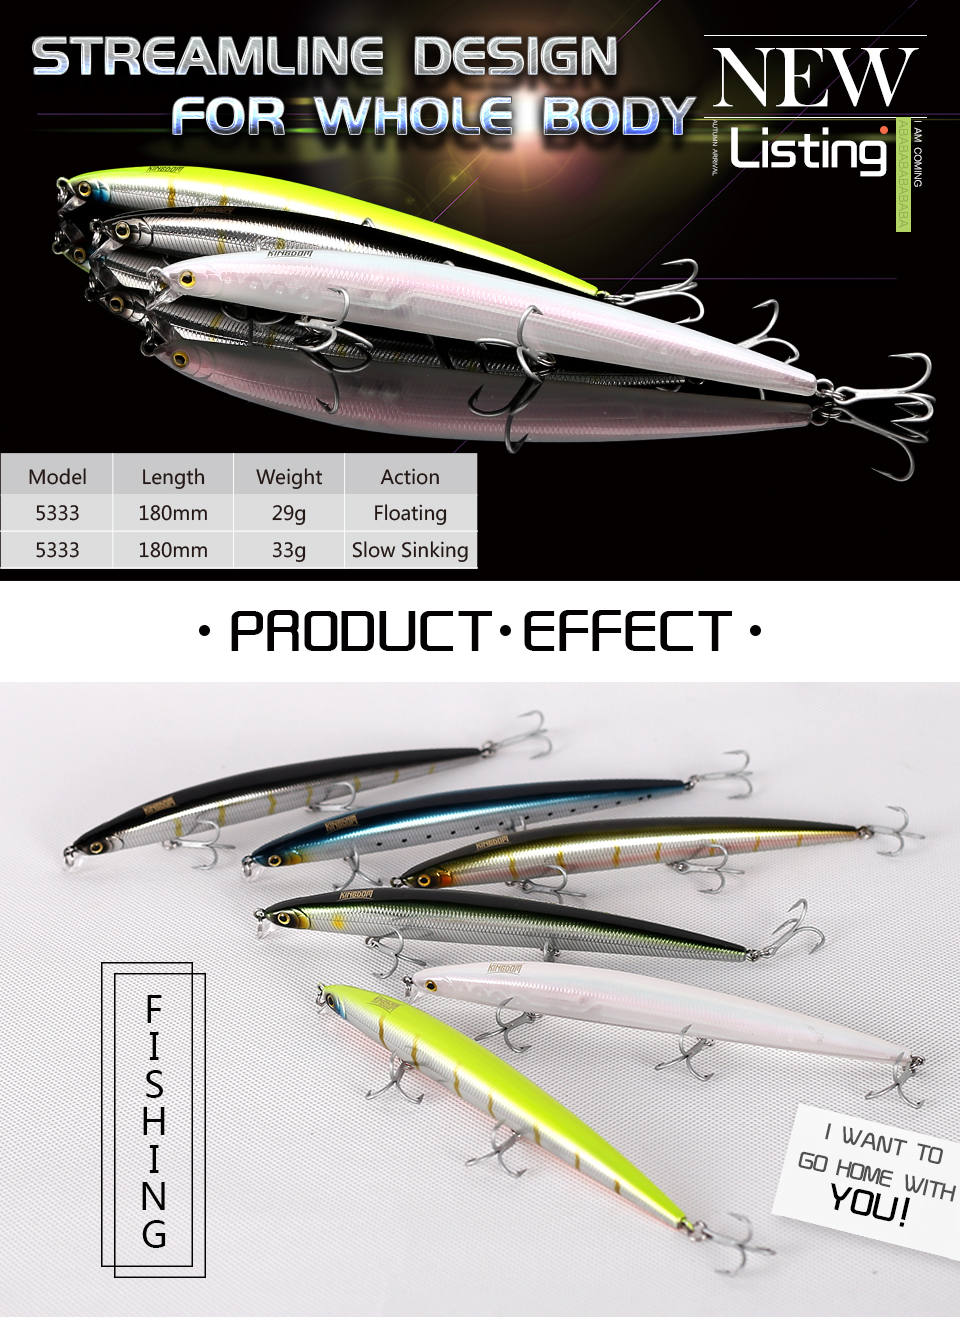 Kingdom Sea Fishing Lure 18cm 29g, 33g Floating And Slow Sinking Minnow Wobblers With VMC Hooks Fishing Tackle Model 5333-S (1)